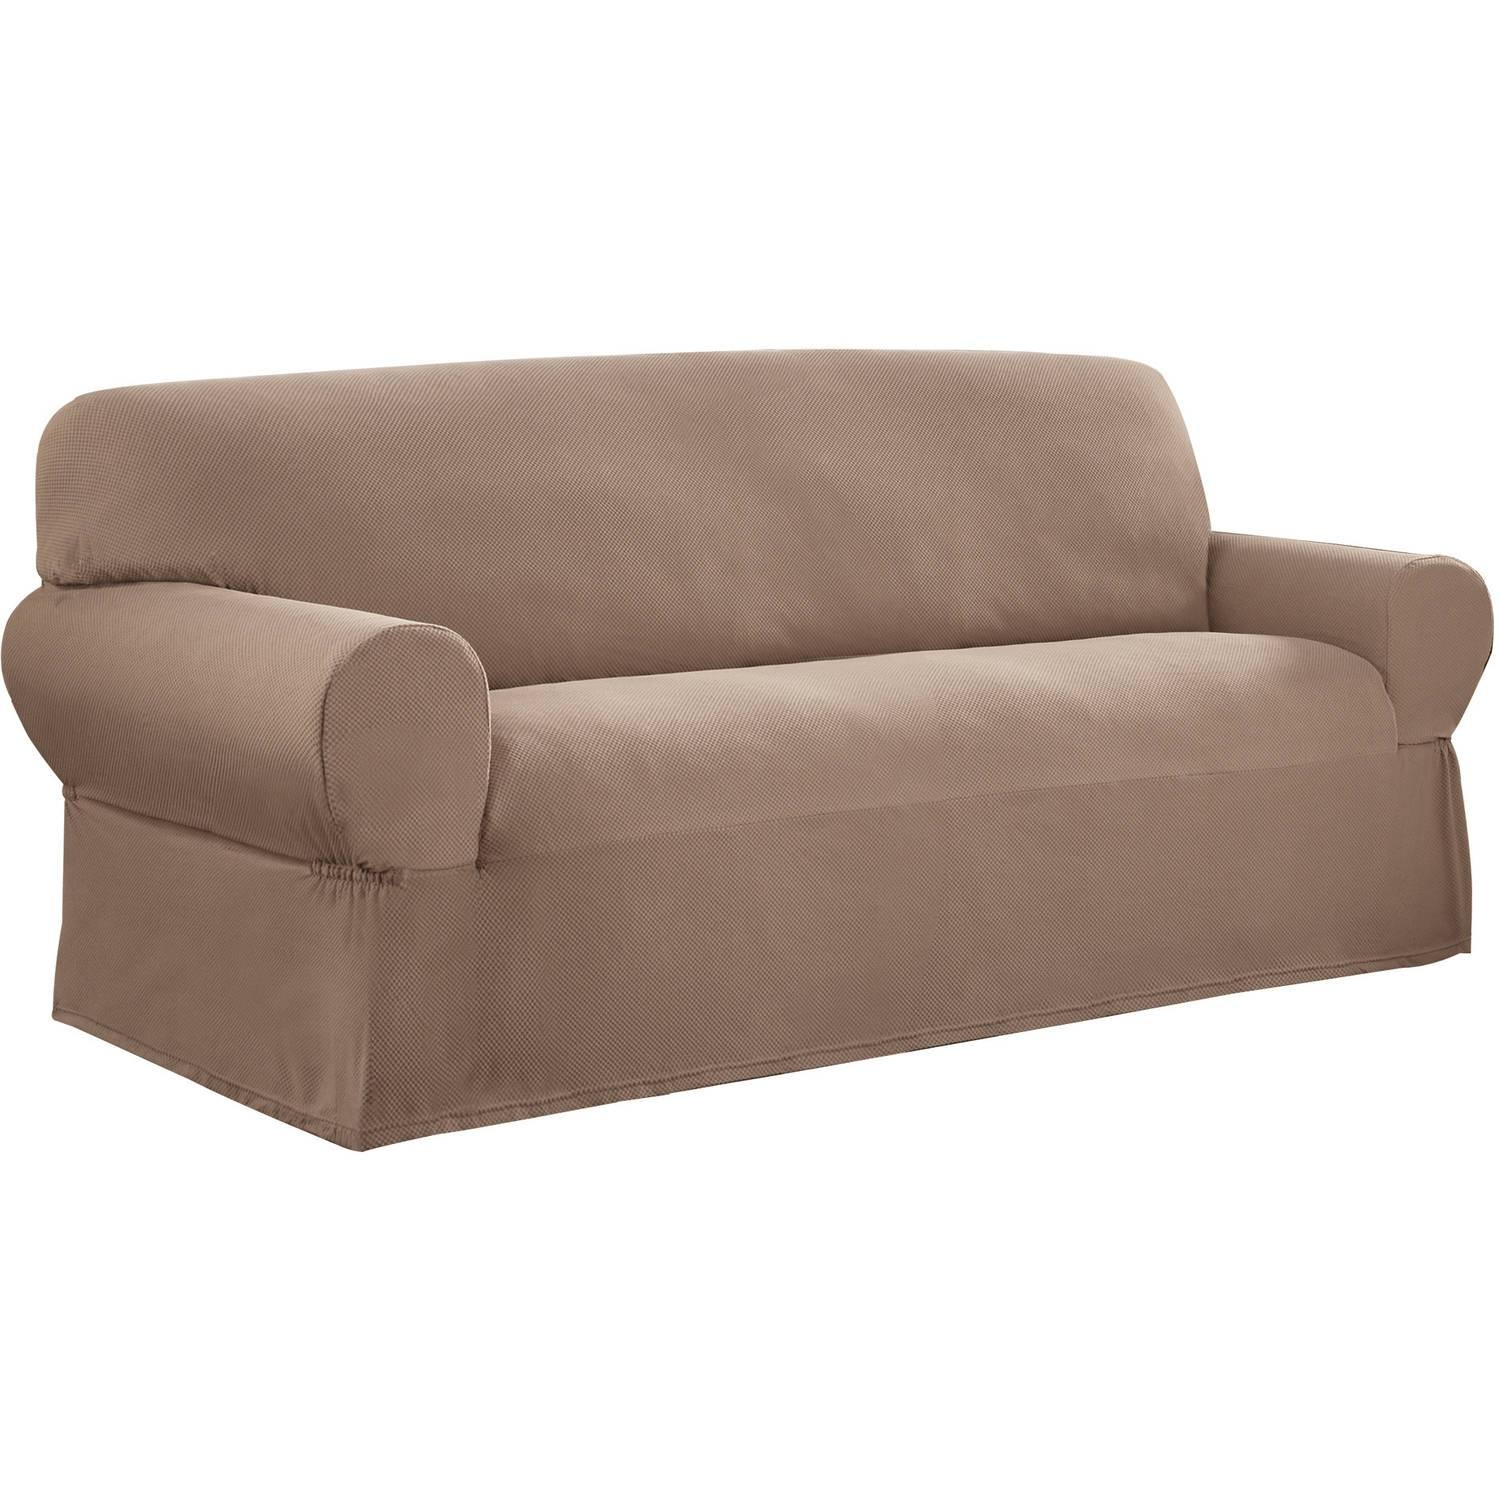 Slipcovers - Walmart regarding Arm Covers for Sofas (Image 14 of 30)